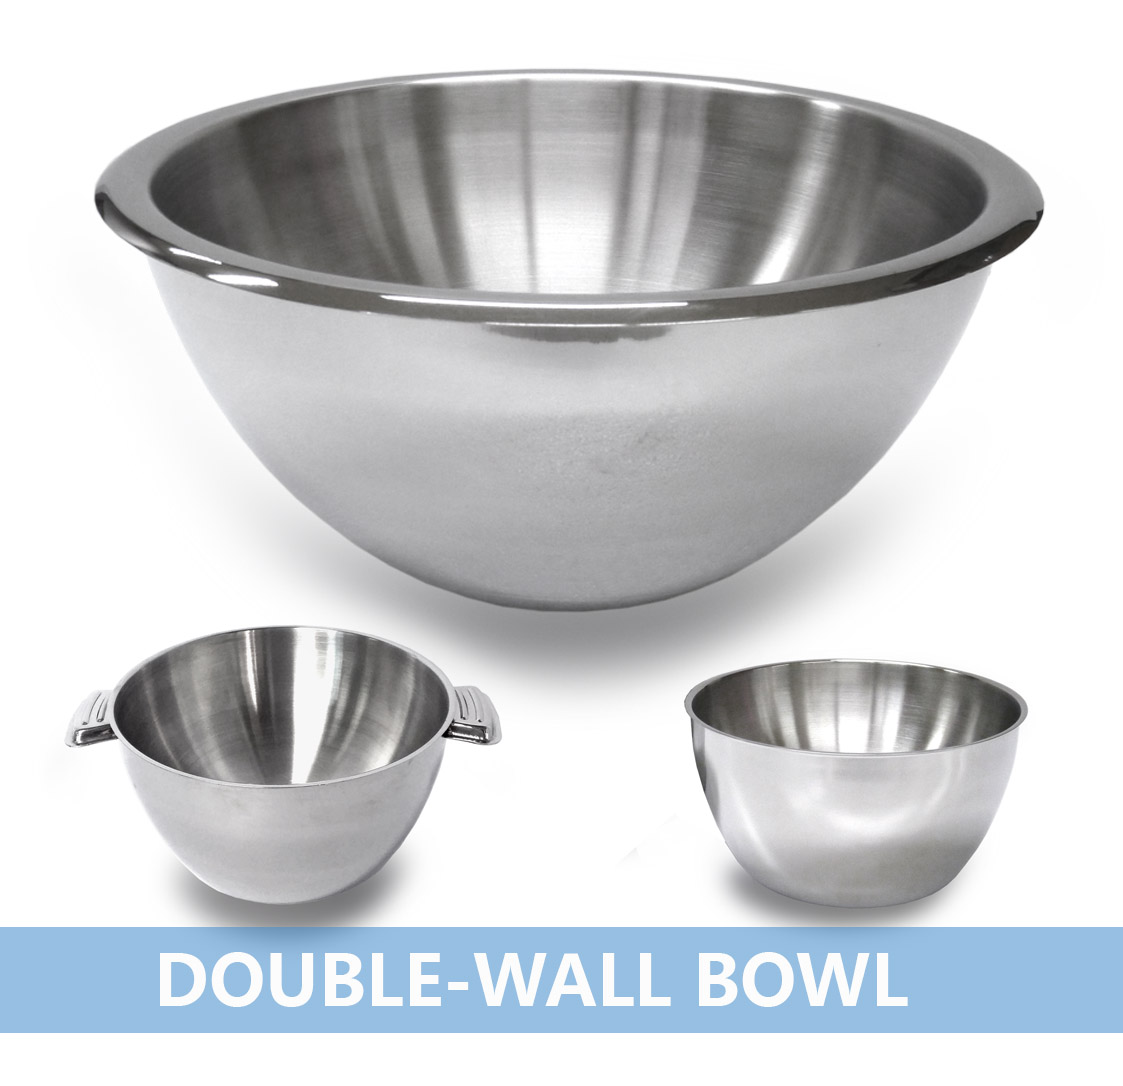 雙層煲 Double-Wall Bowl